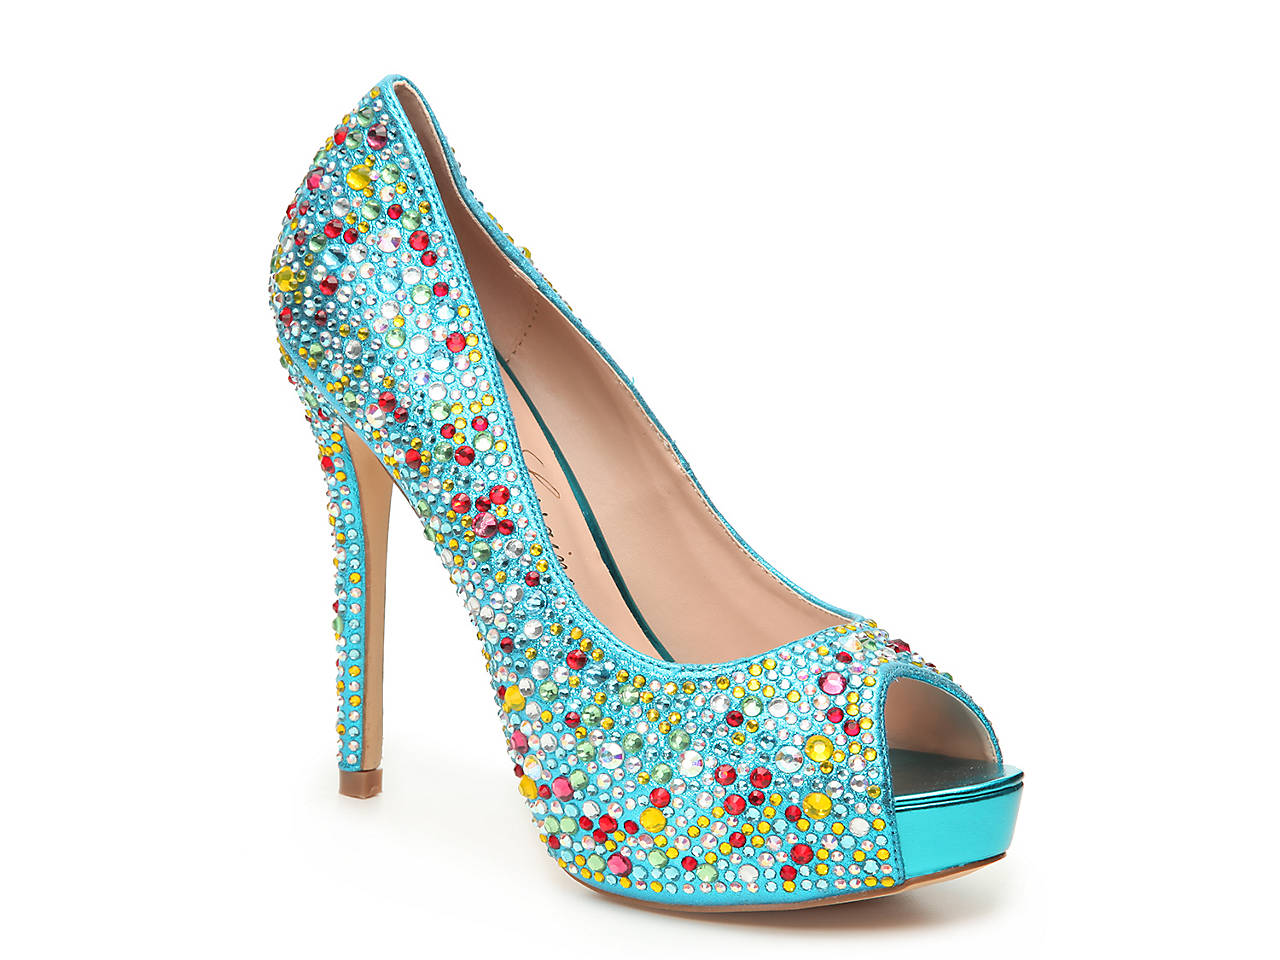 daaf930c4 Lauren Lorraine Candy Platform Pump Women s Shoes